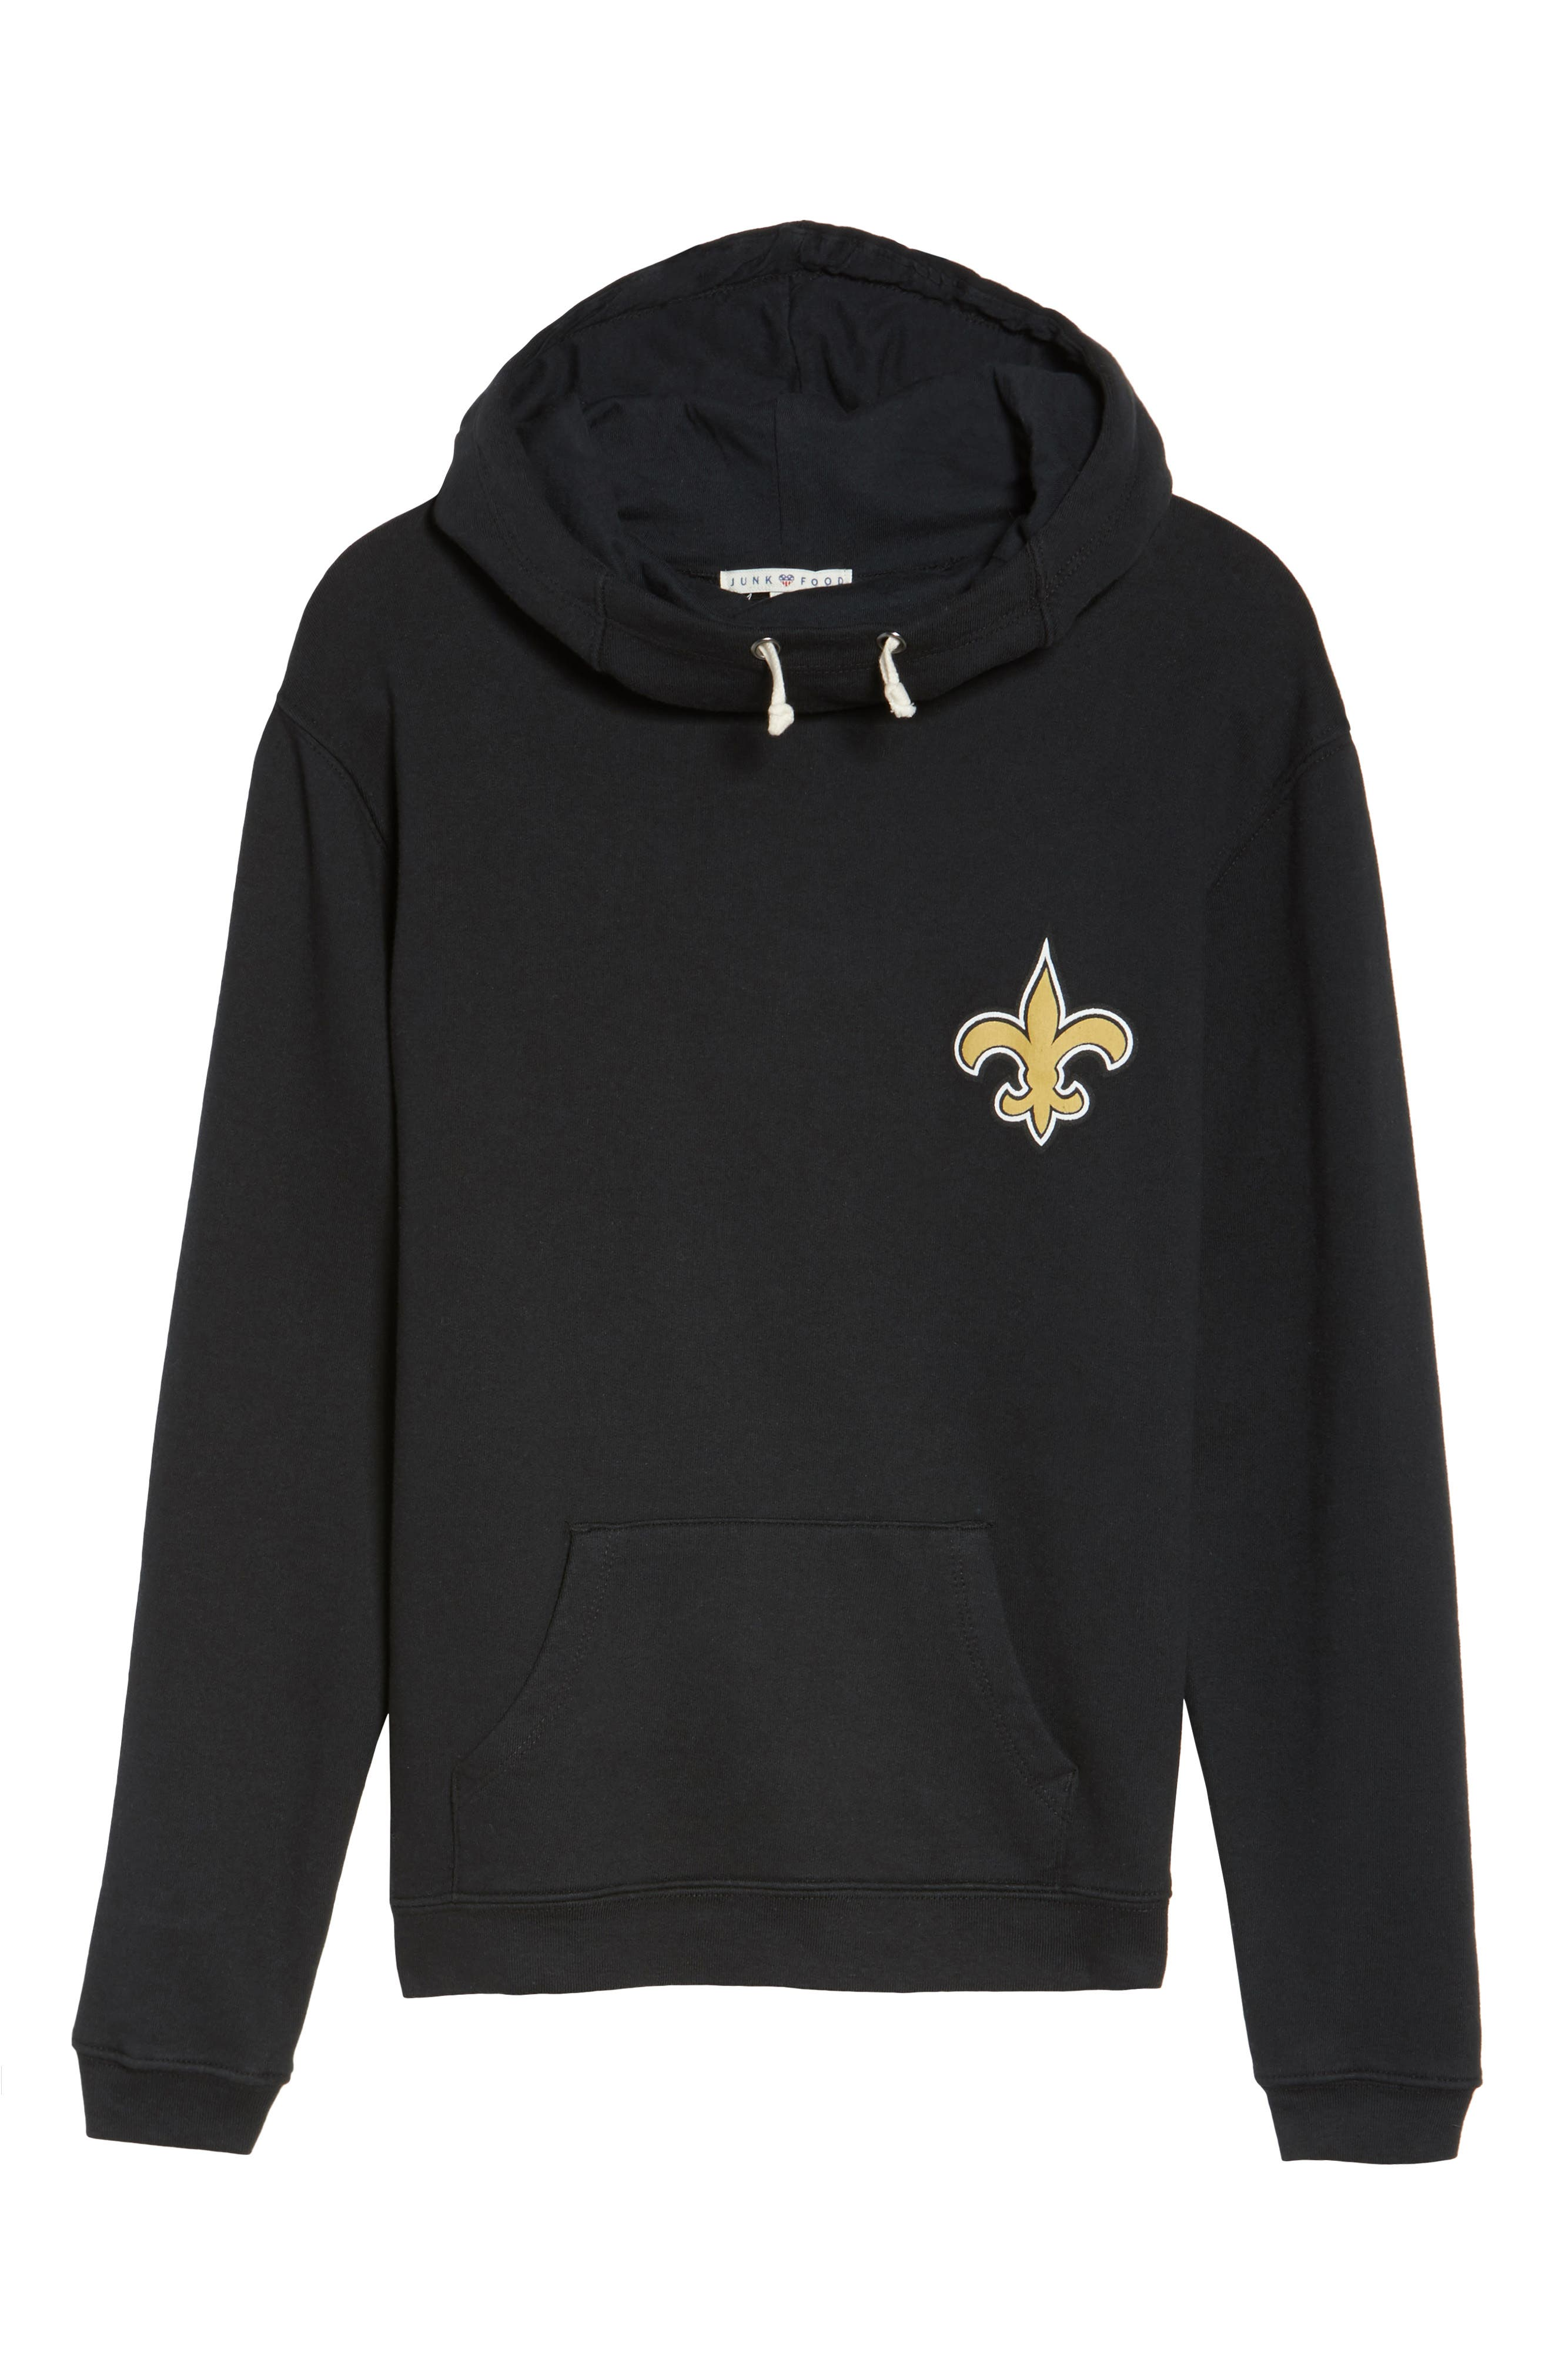 NFL New Orleans Saints Sunday Hoodie,                             Alternate thumbnail 6, color,                             001